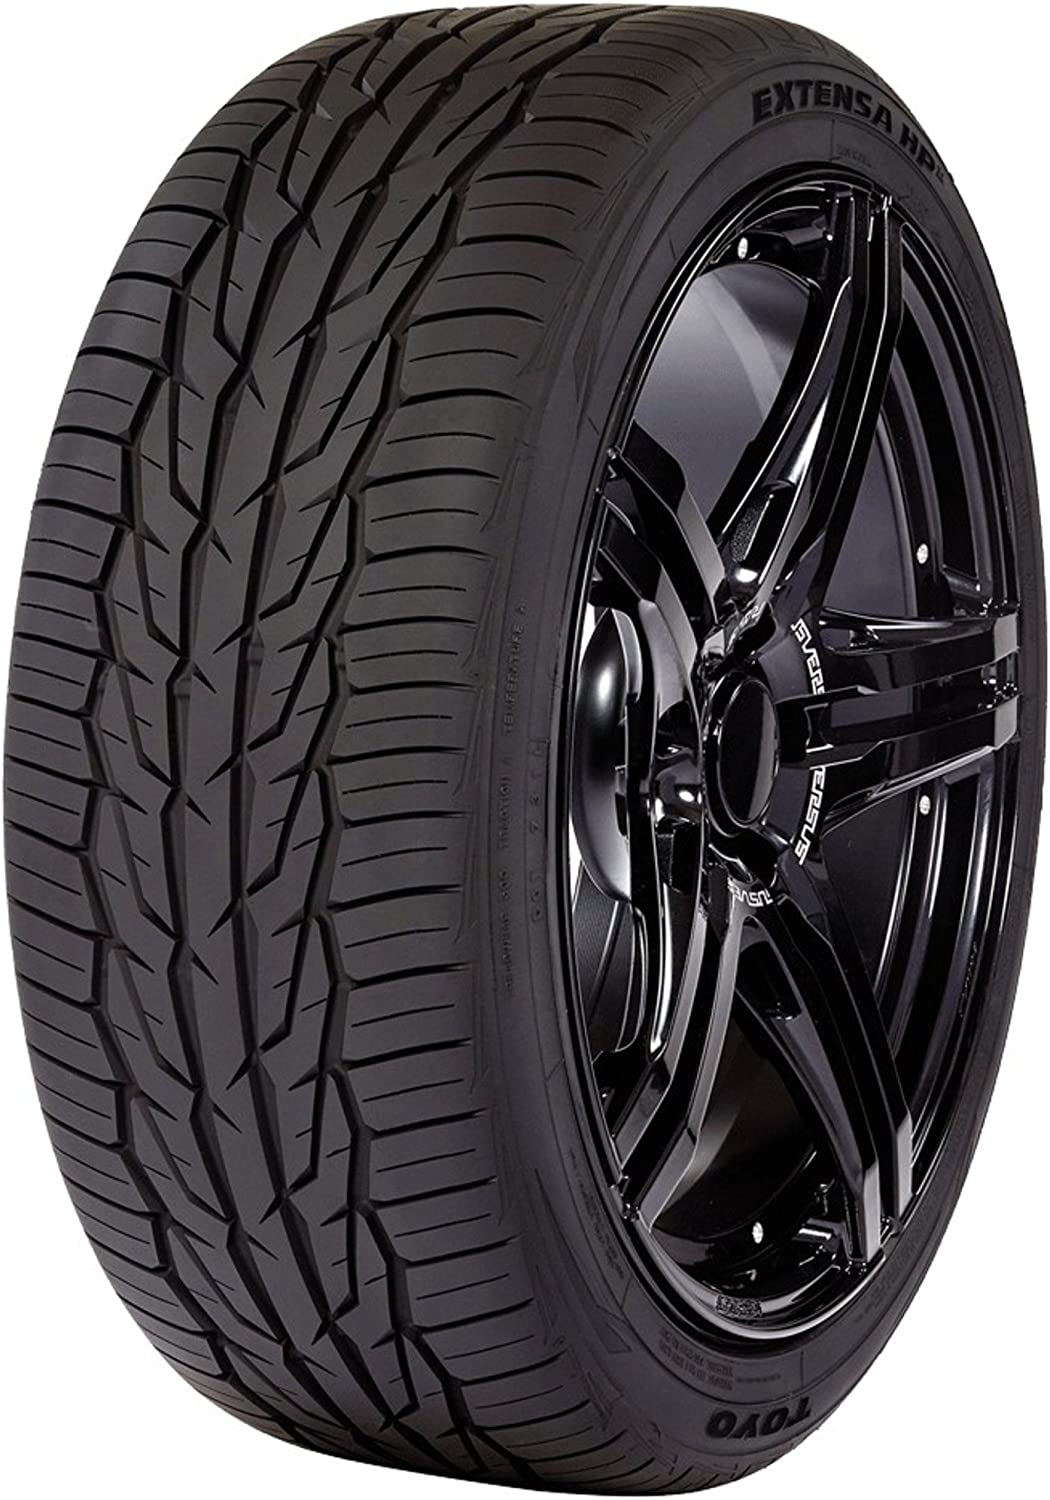 Toyo Tires PROXES 40% OFF Cheap Sale ST III All-Season Radial 255 Tire Very popular 109V - 50 20